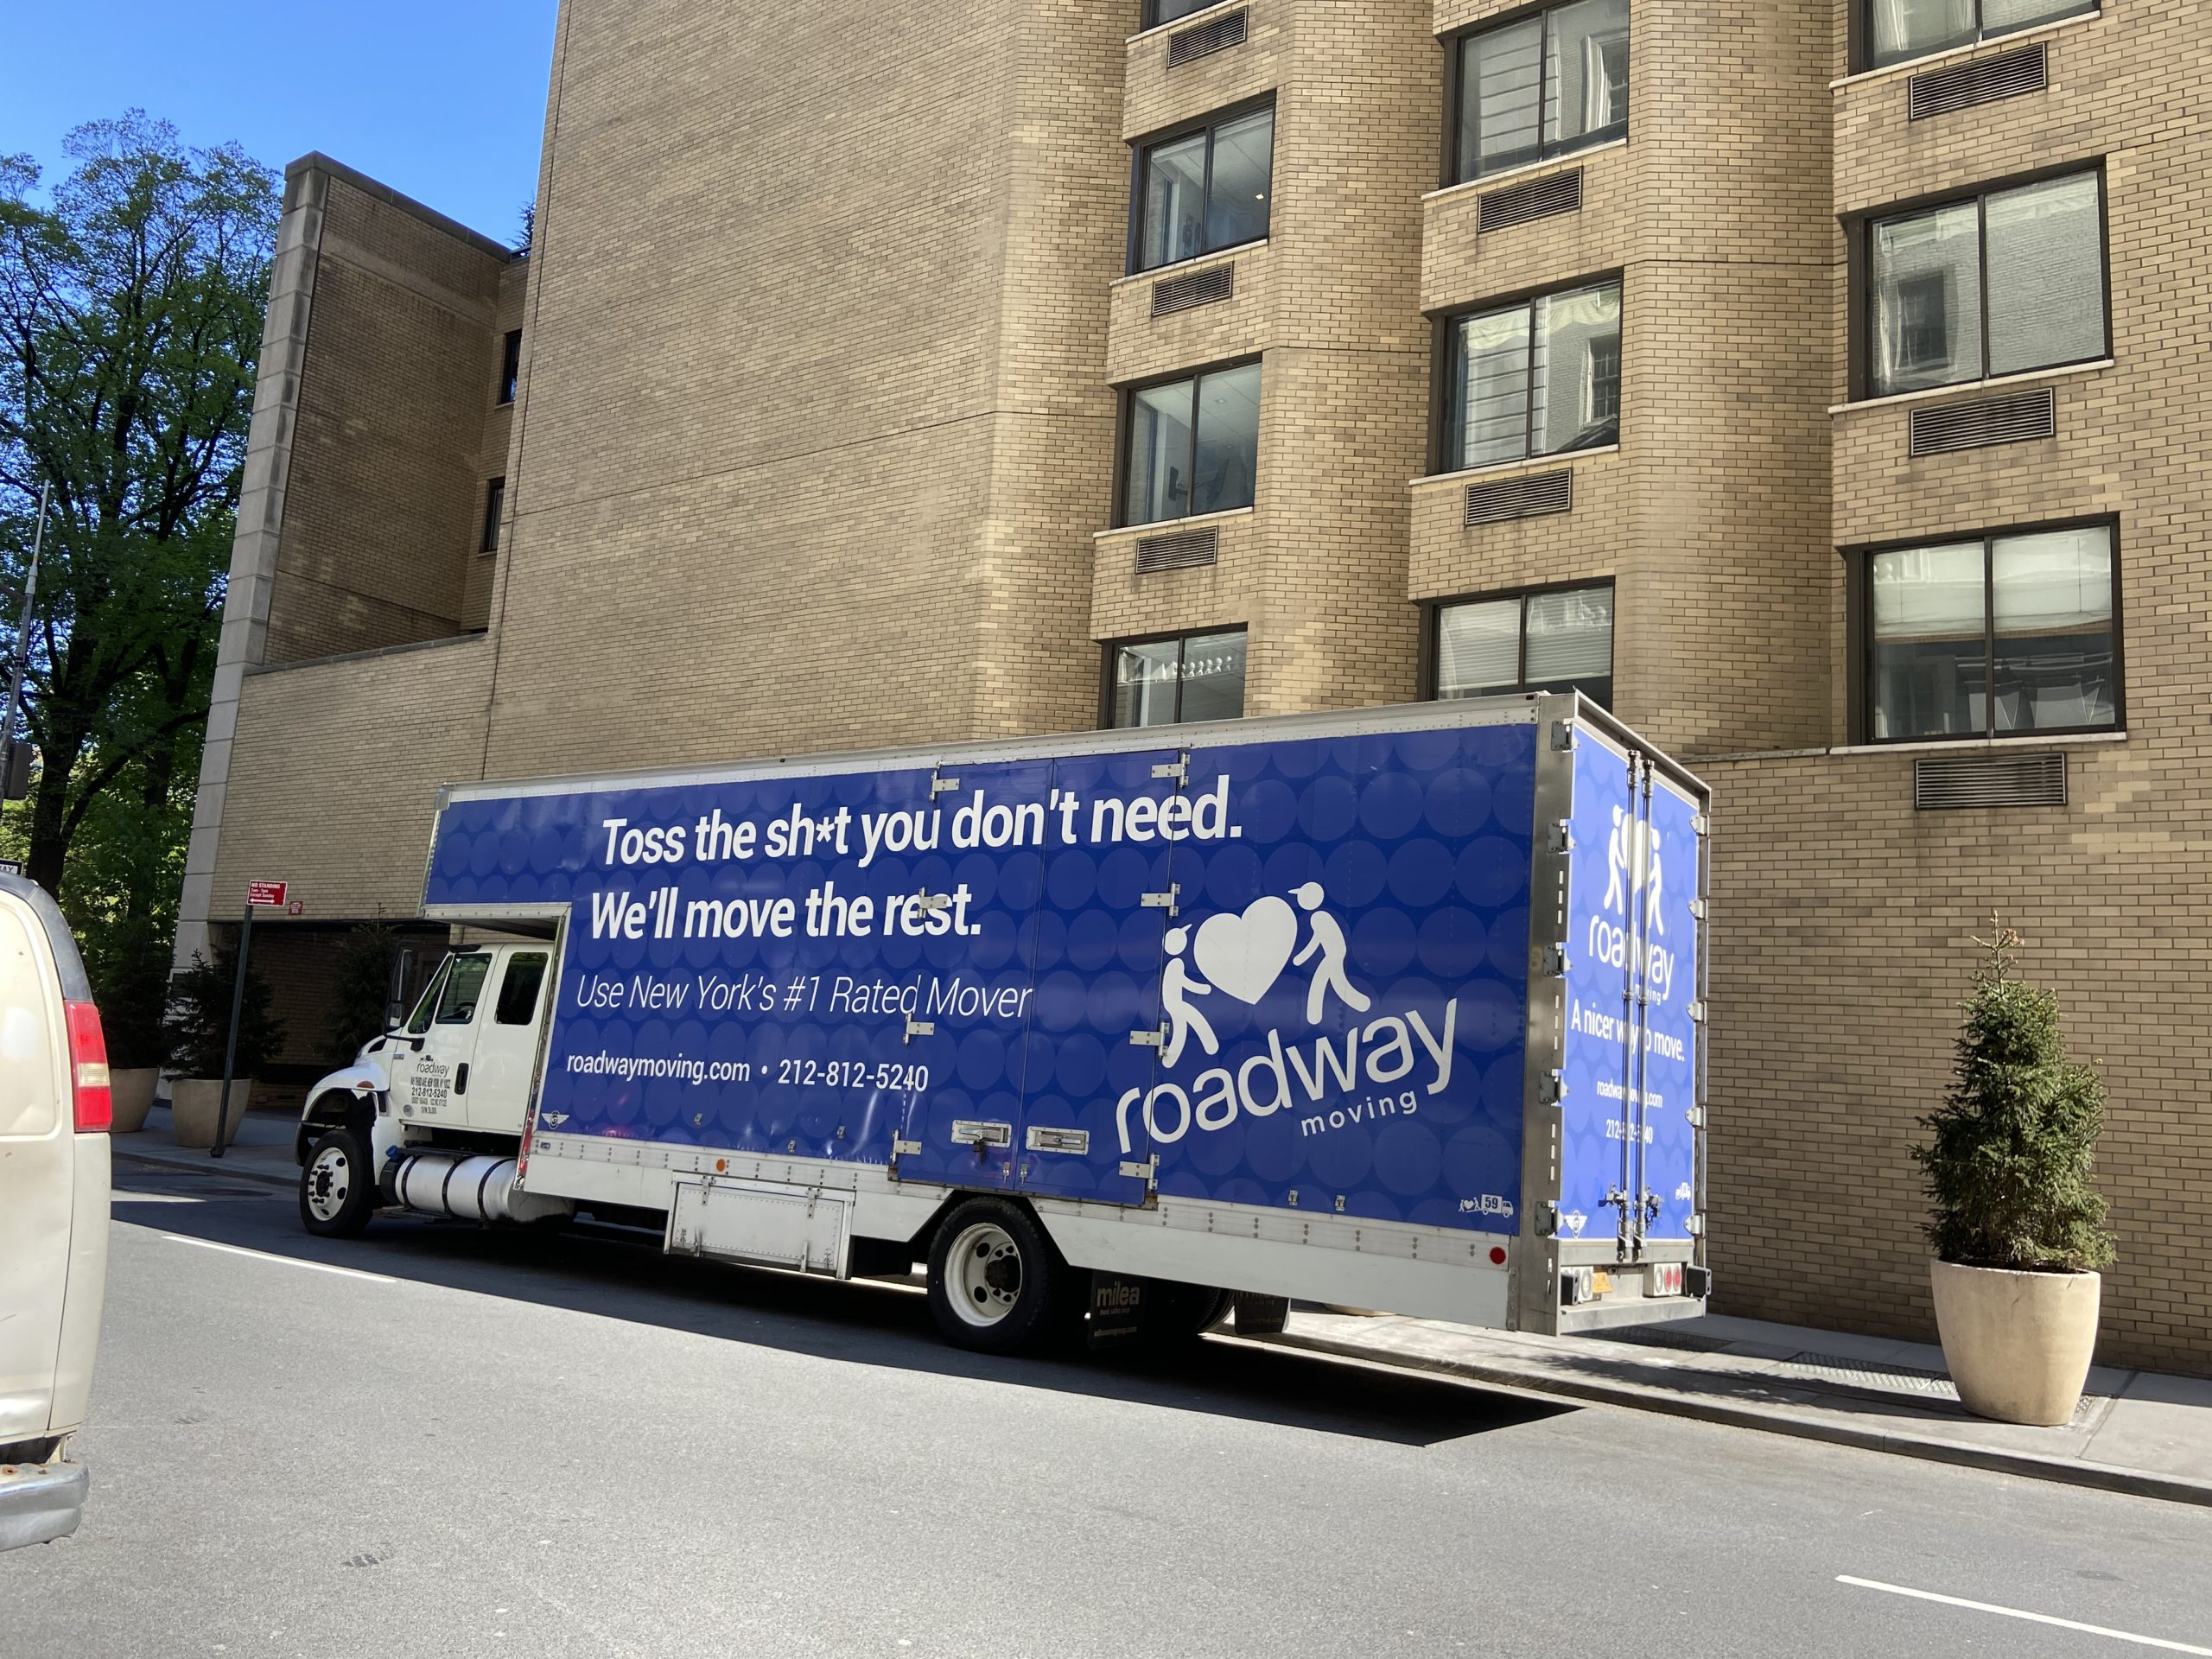 Best Cross Country Movers: How Do You Find Them?